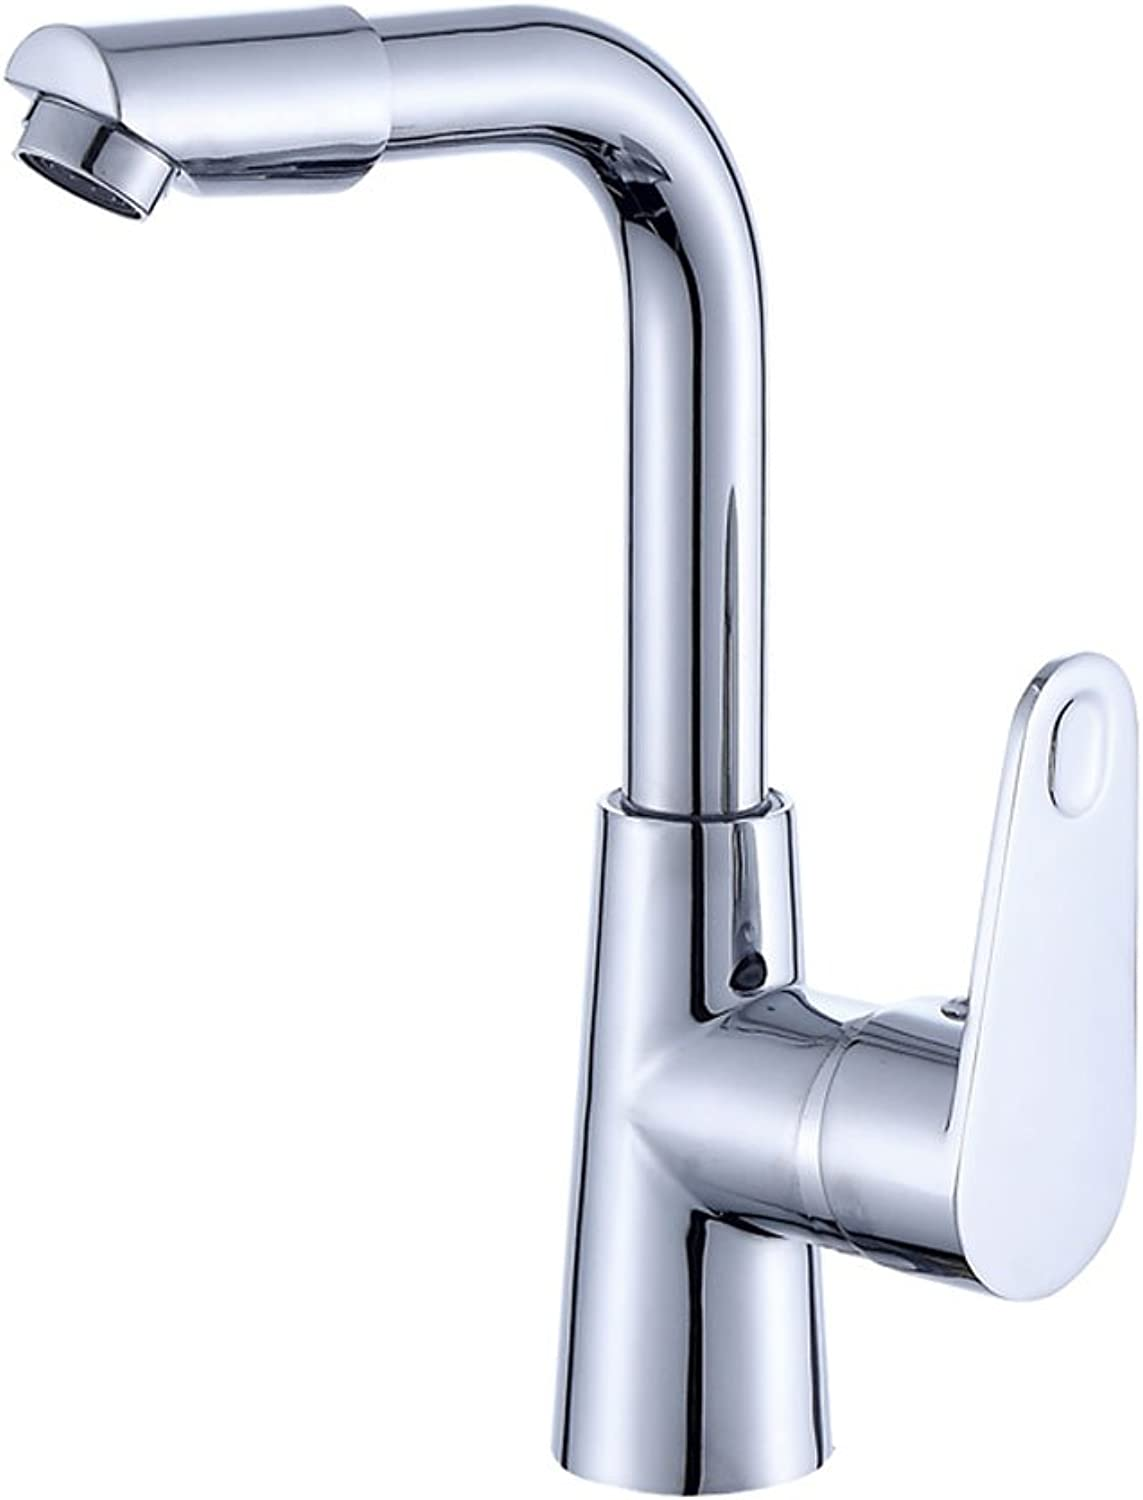 Bathtub ZI LING SHOP- Wash Basin Hot And Cold Faucet Bathroom Cabinet Single Hole Single Cold Water Kitchen Sink